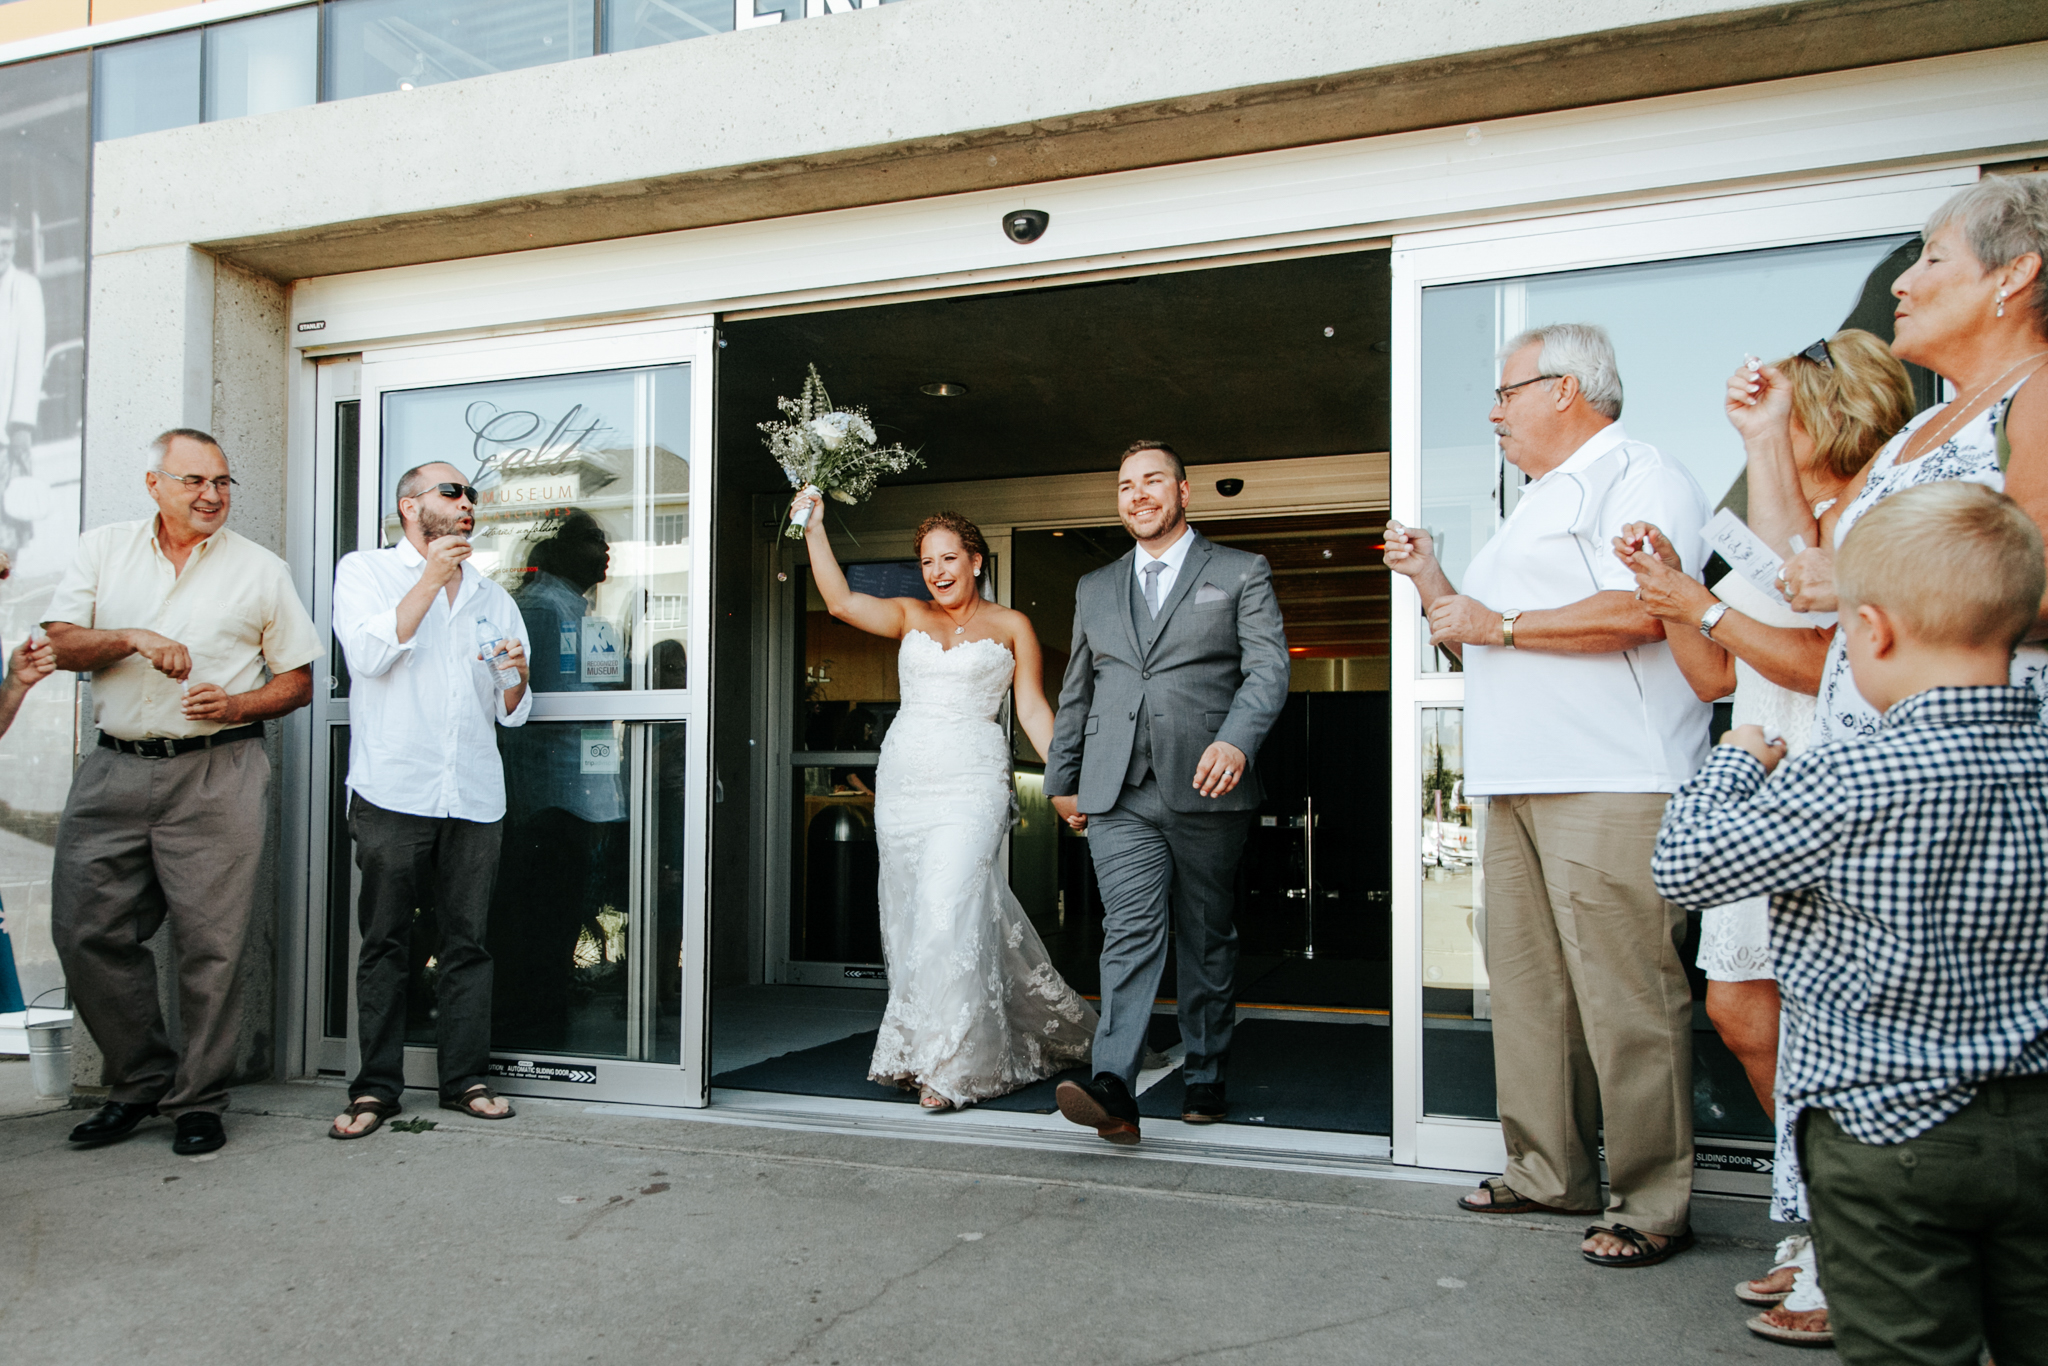 lethbridge-wedding-photographer-love-and-be-loved-photography-trent-danielle-galt-reception-picture-image-photo-69.jpg